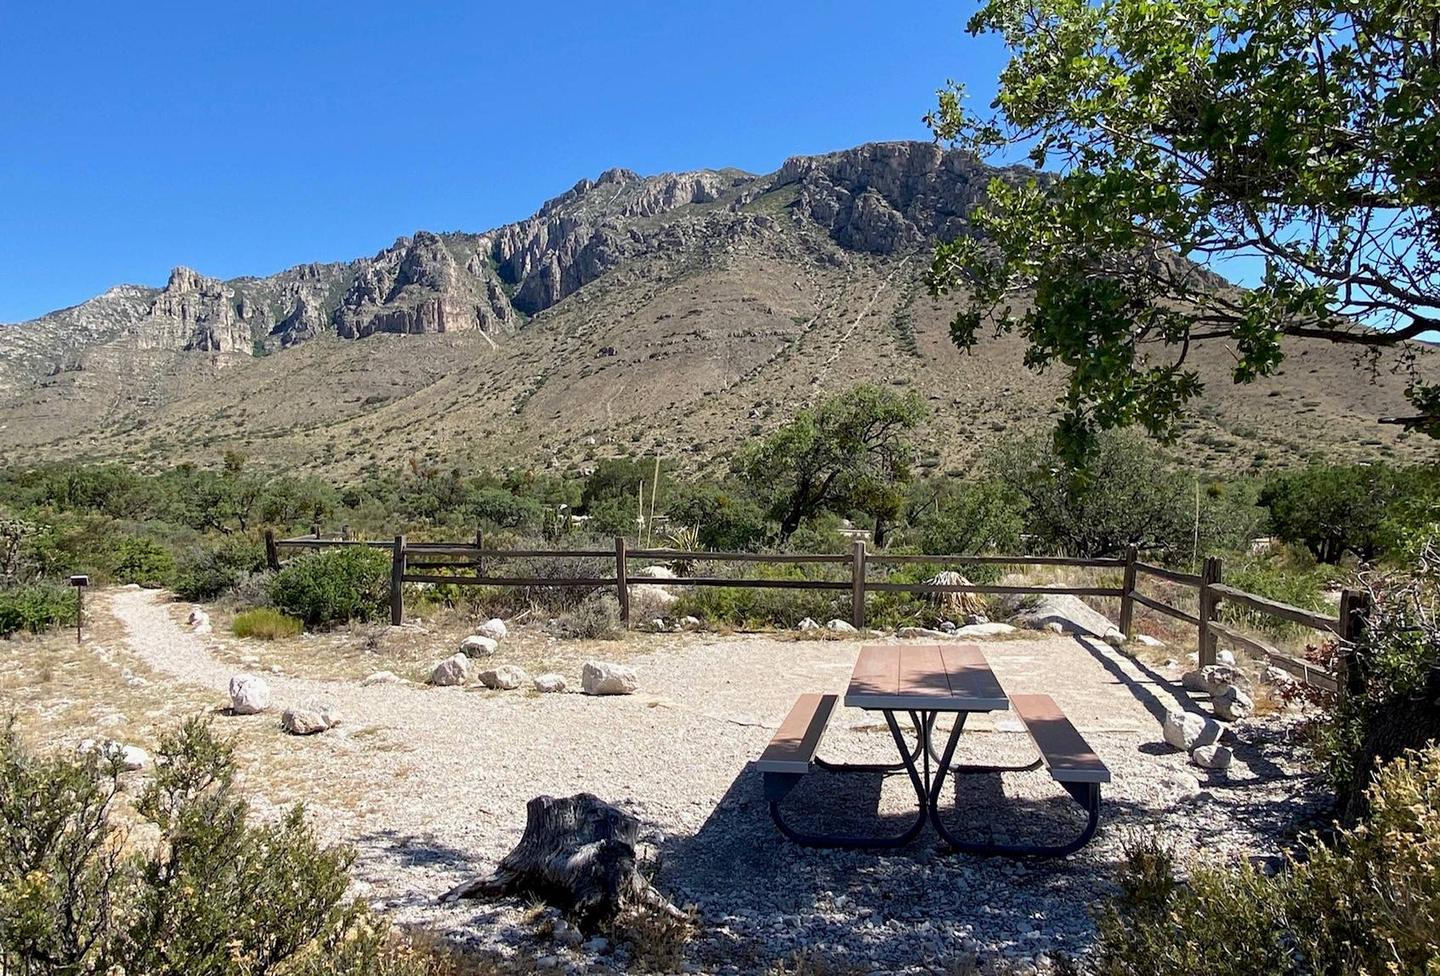 Tent campsite number 10 looking from the west side of site.  Walking path shown from the left side of the photo.  Panoramic views of the Guadalupe Mountains.Tent campsite number 10 looking from the west side of site.  Walking path shown from the left of the photo.  This site has panoramic views of the mountains, basin and canyon.